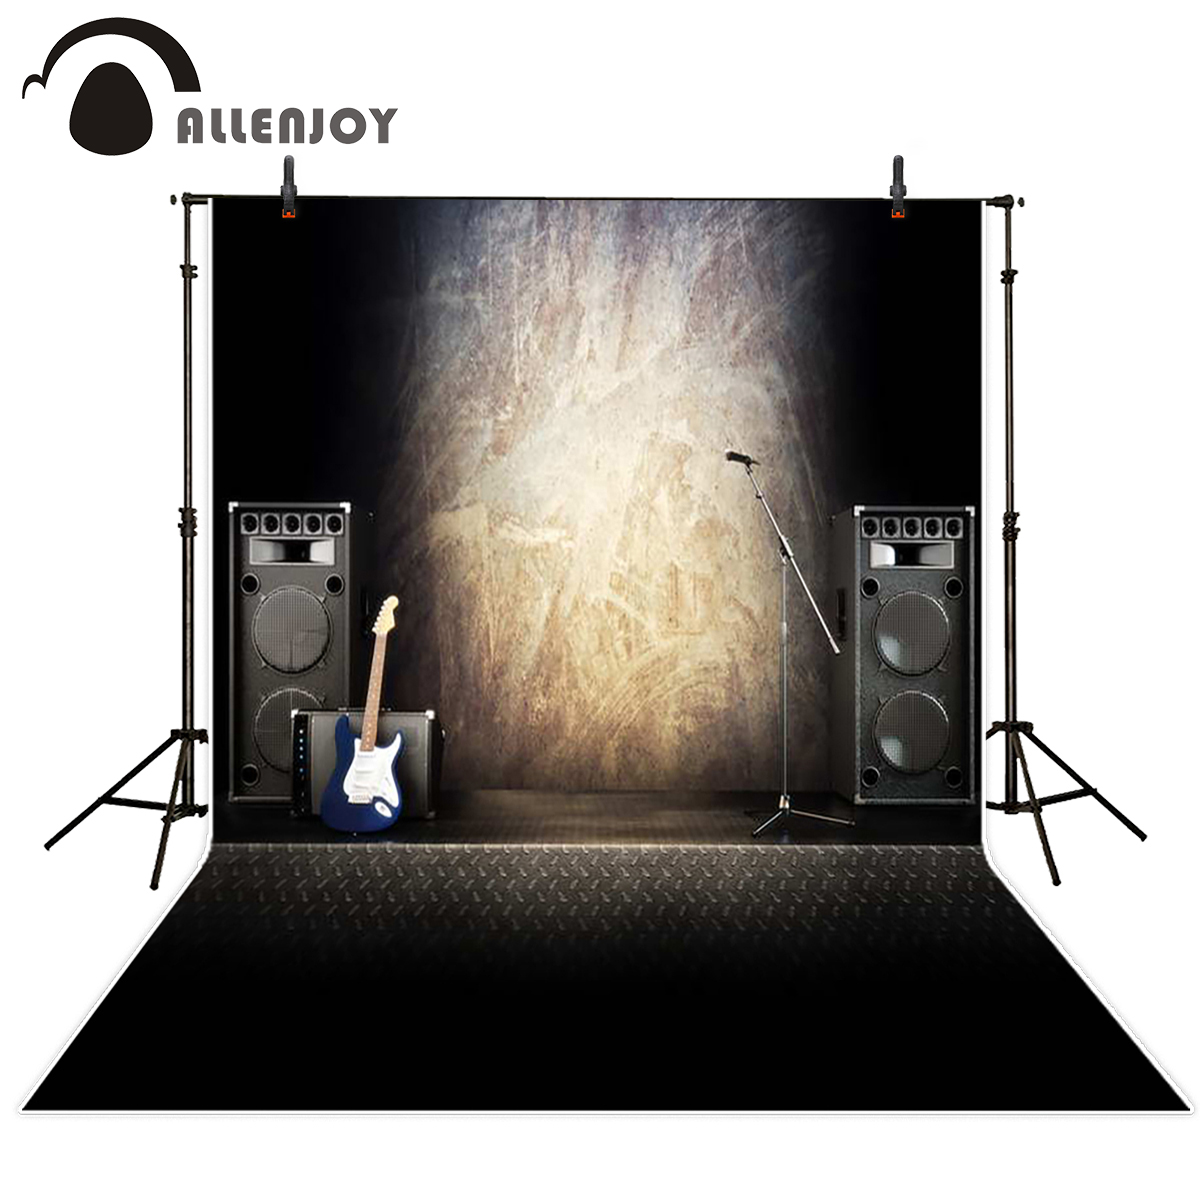 Allenjoy background photography guitar speakers brick wall backdrops photographic professional fabric photocall newborn allenjoy photographic background plank wood floors flower tulip newborn vinyl backdrops photography photocall wall floor